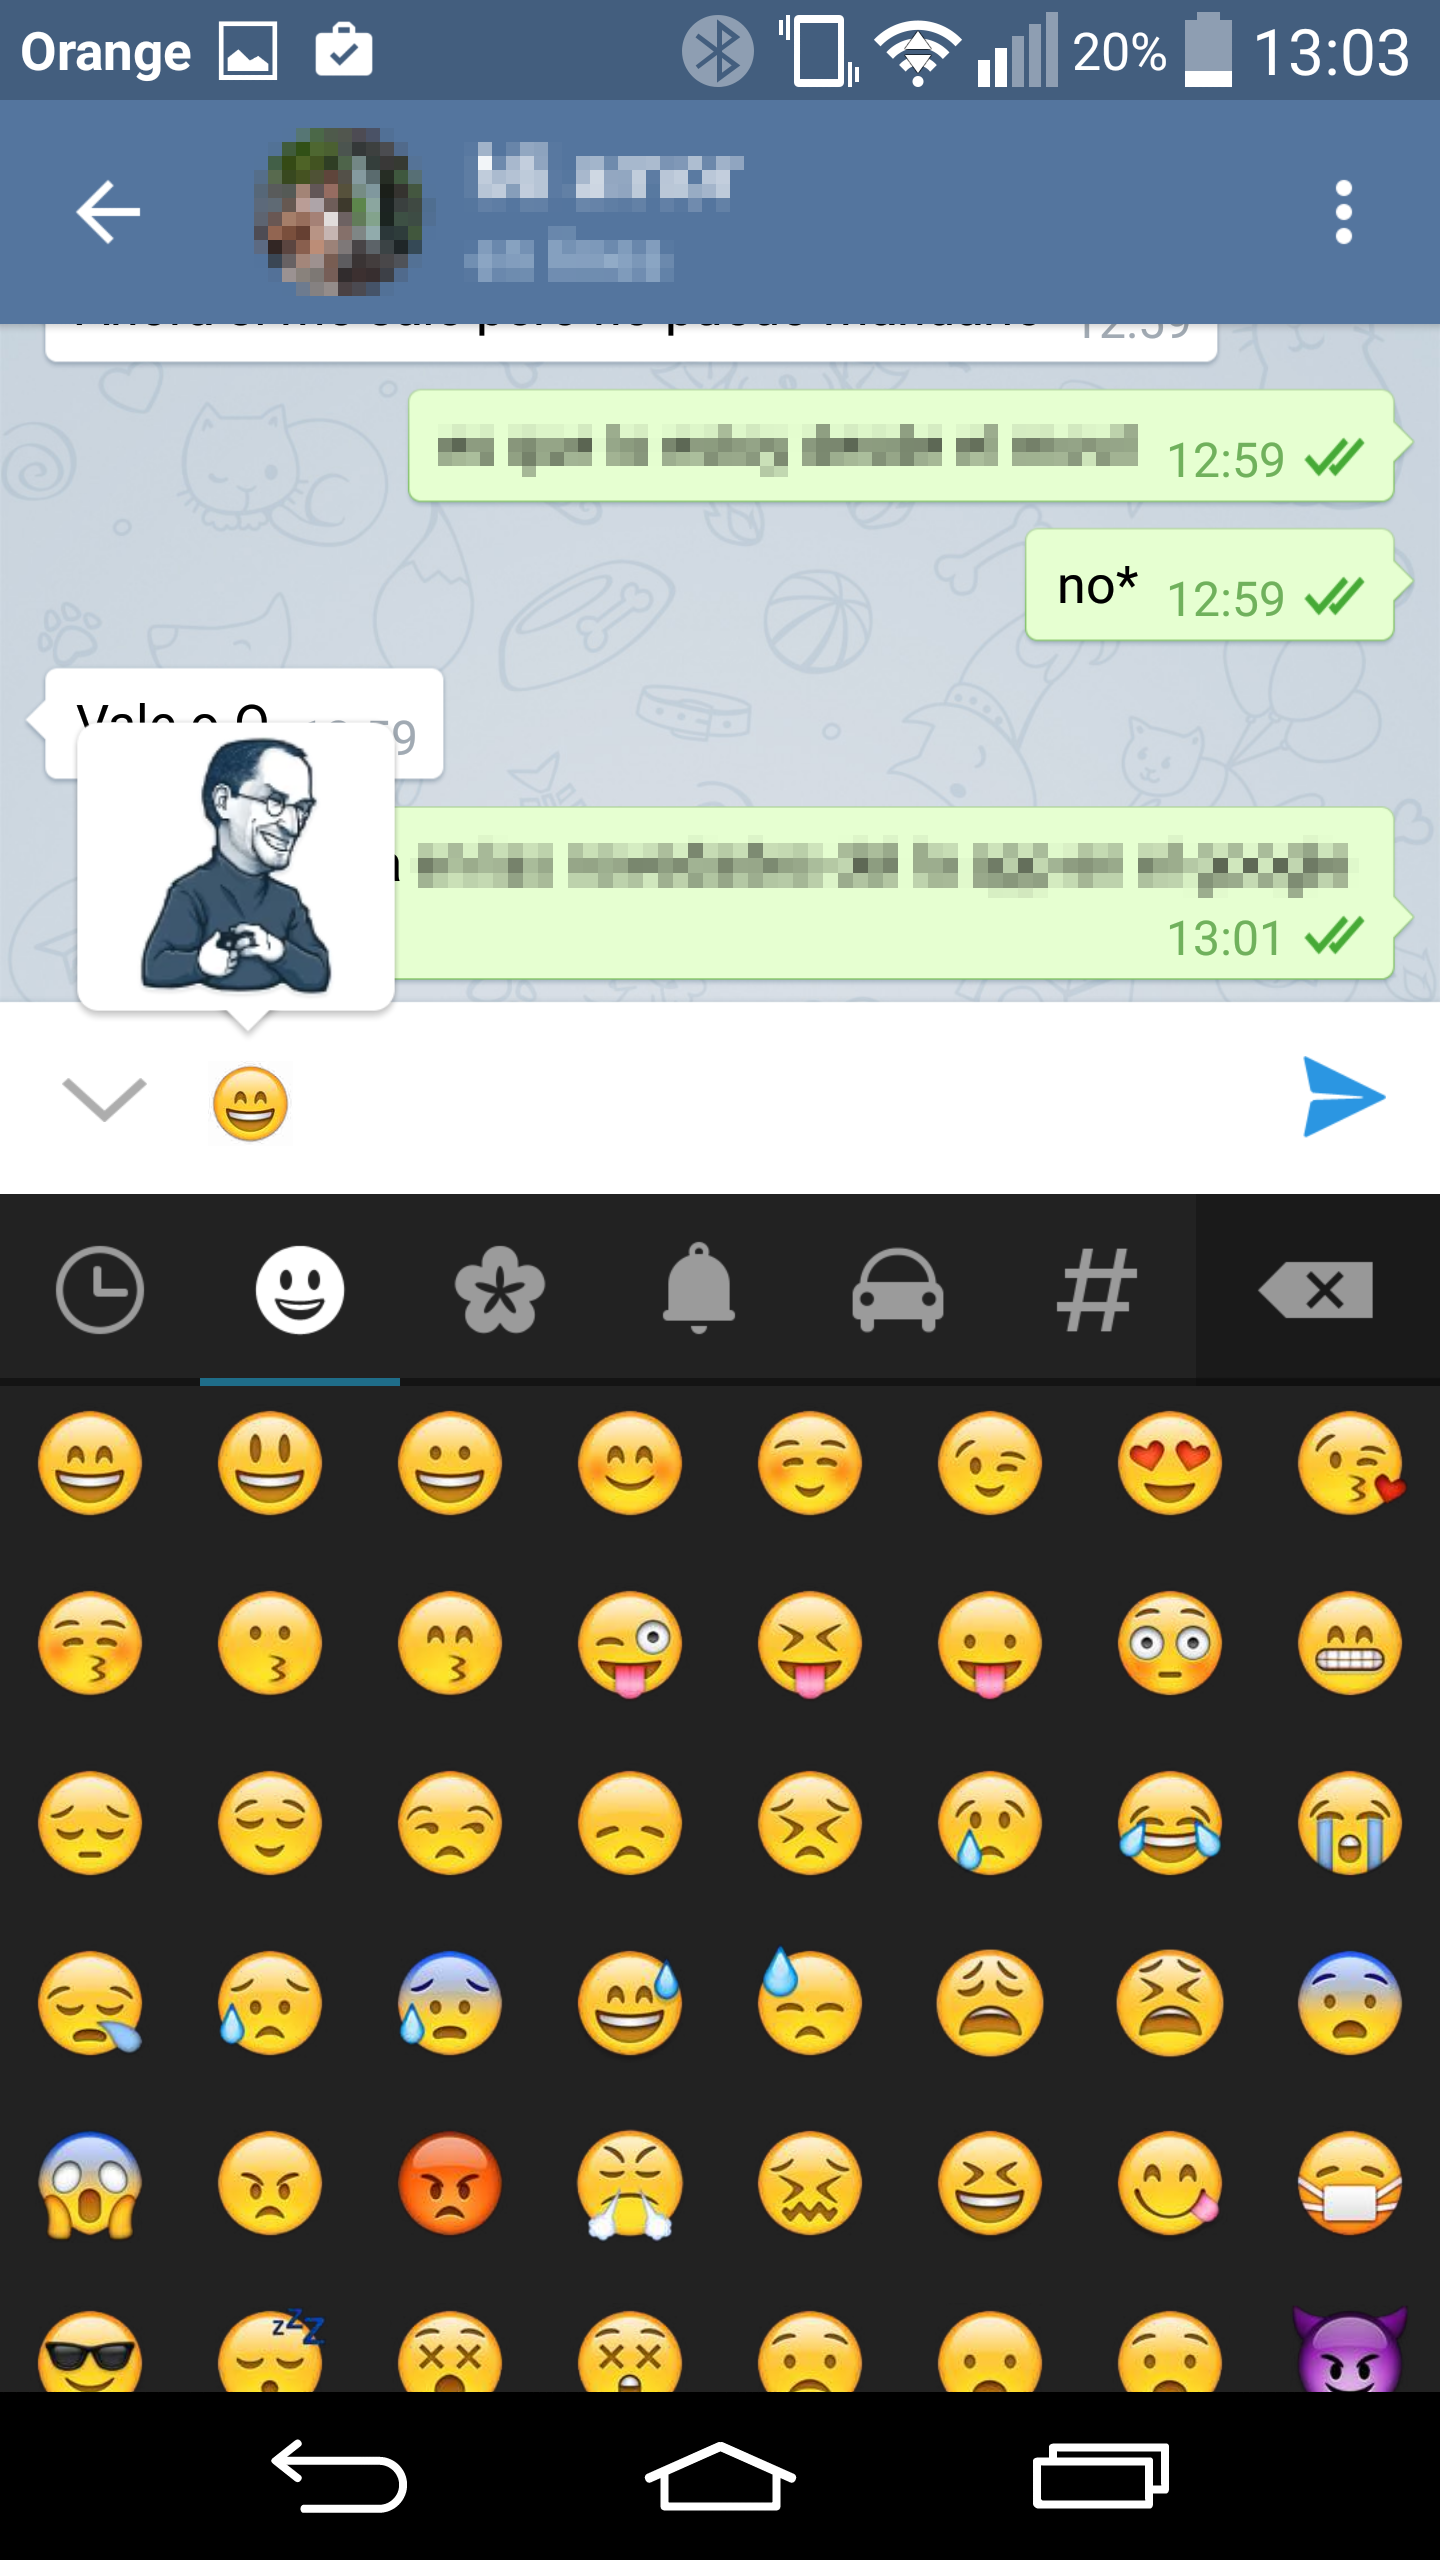 Telegram añade stickers